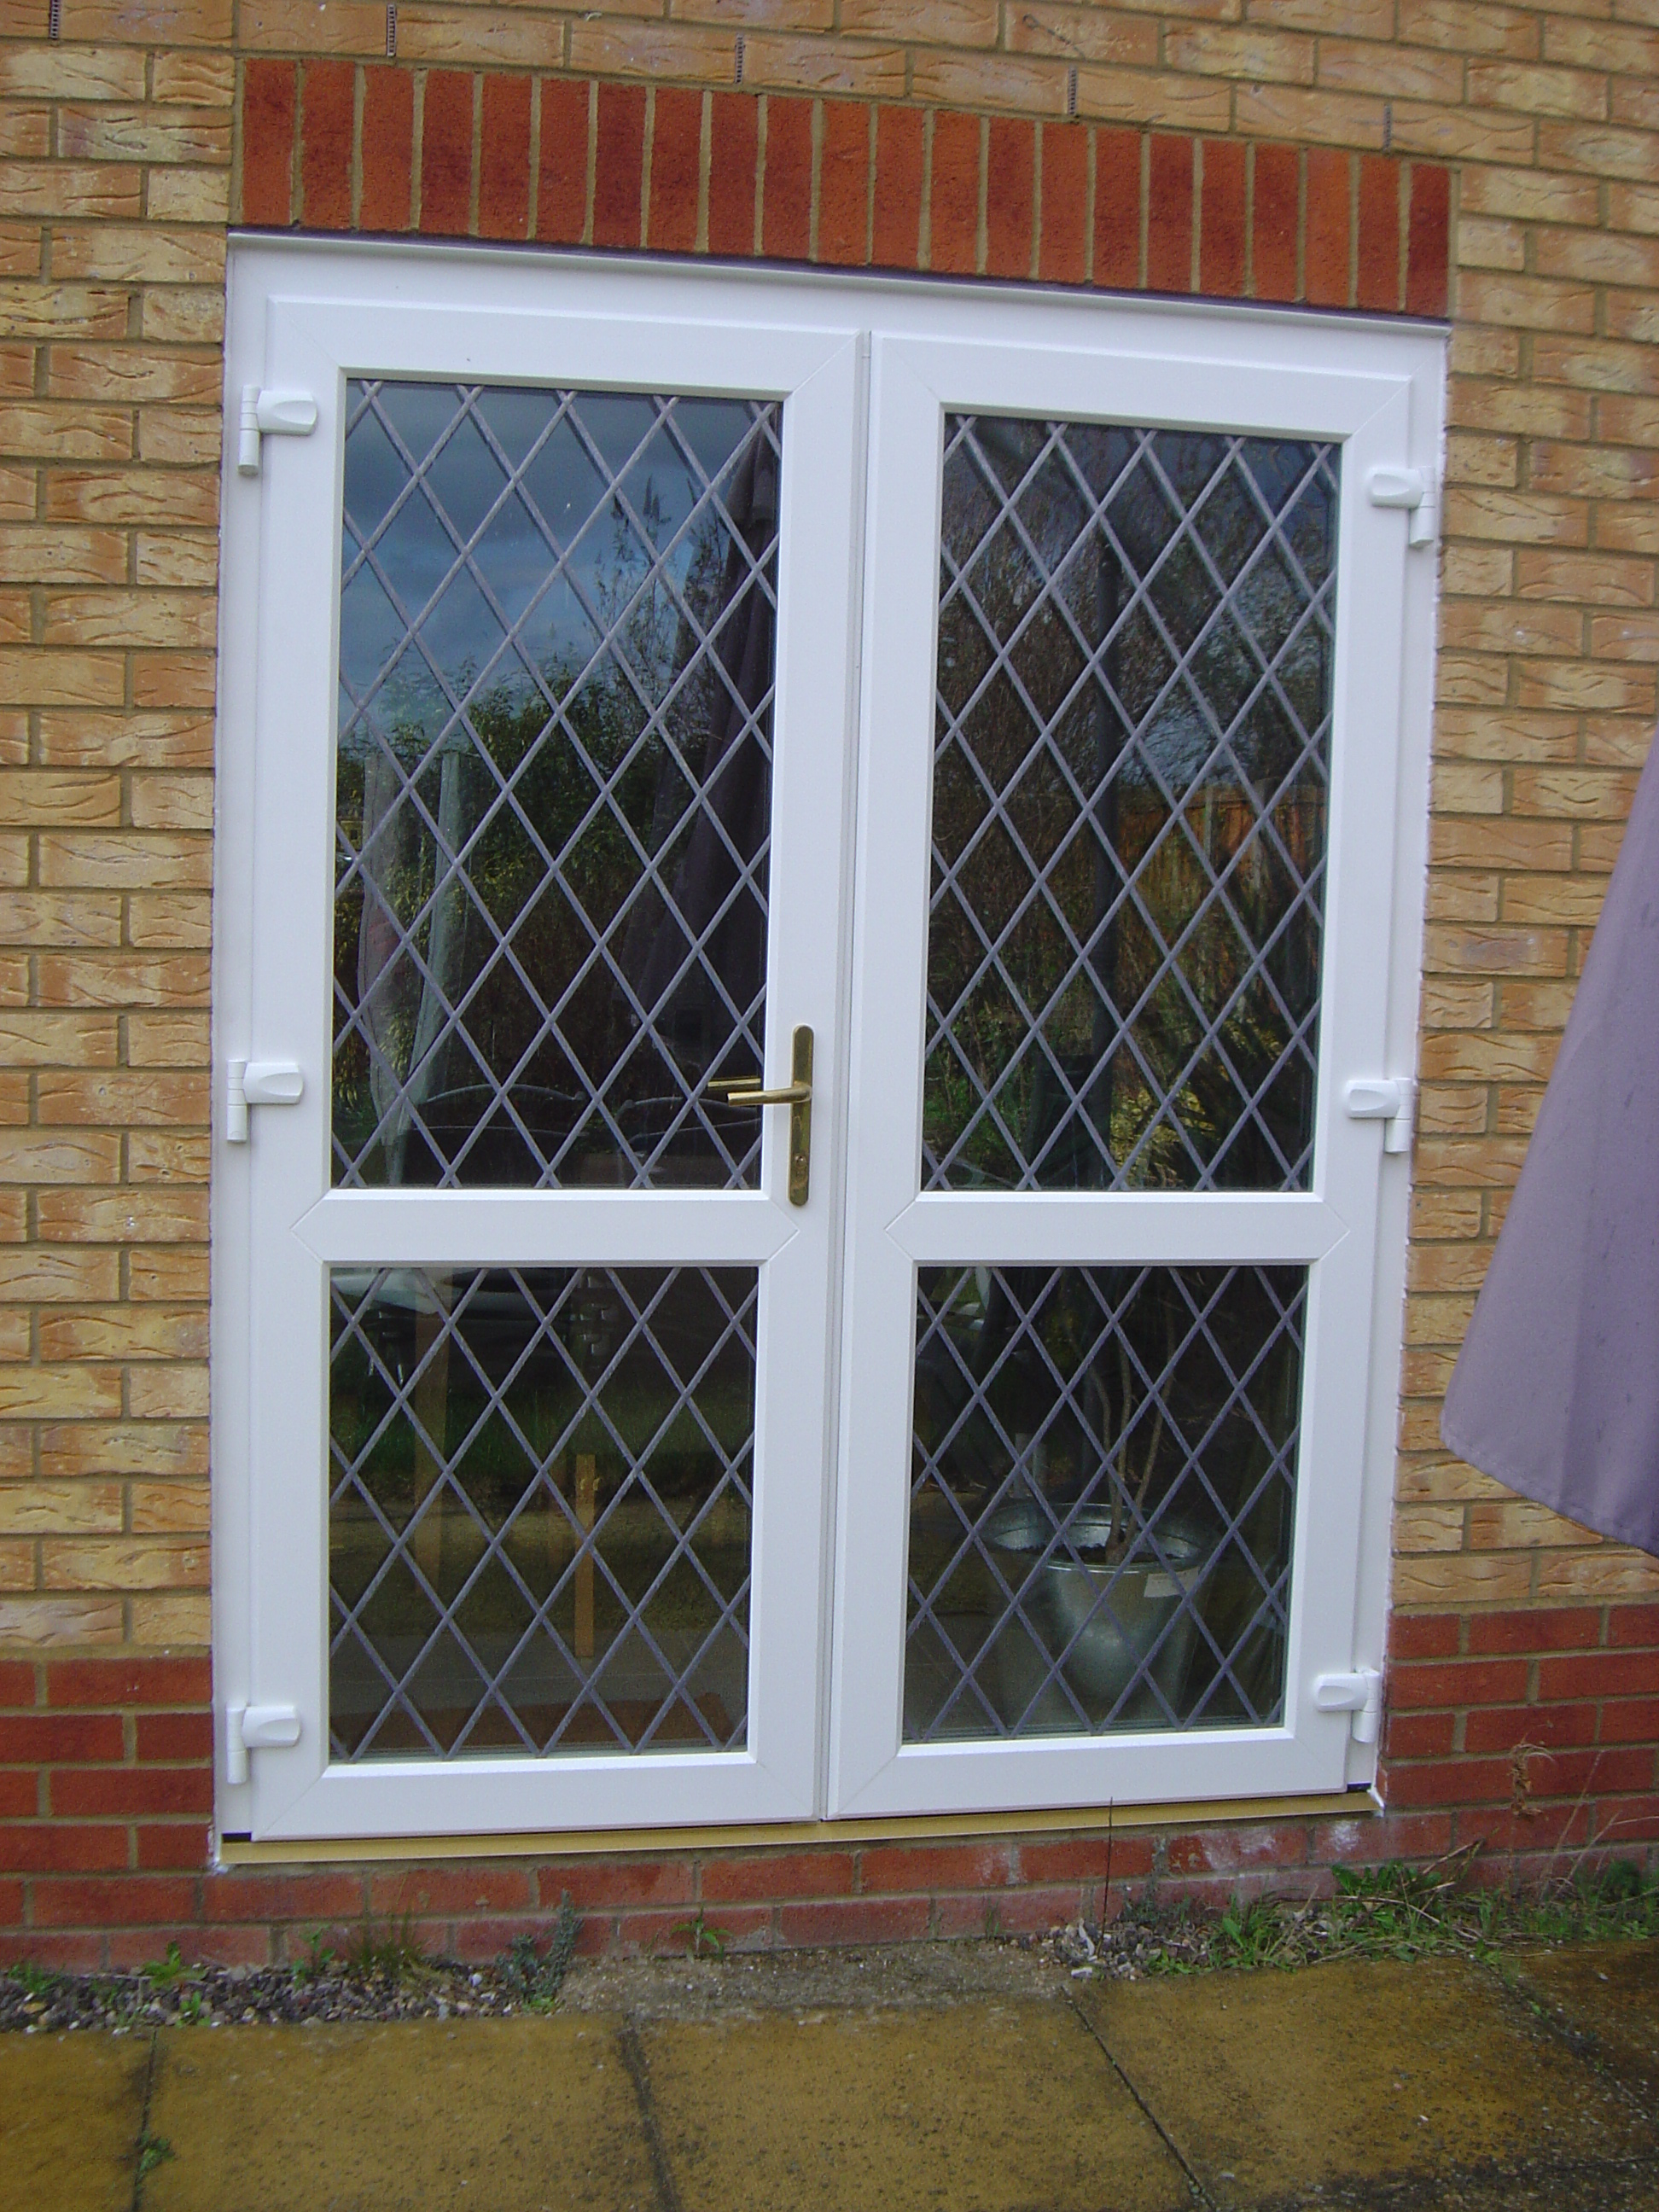 Door security door security for outward opening doors for Outward opening french doors